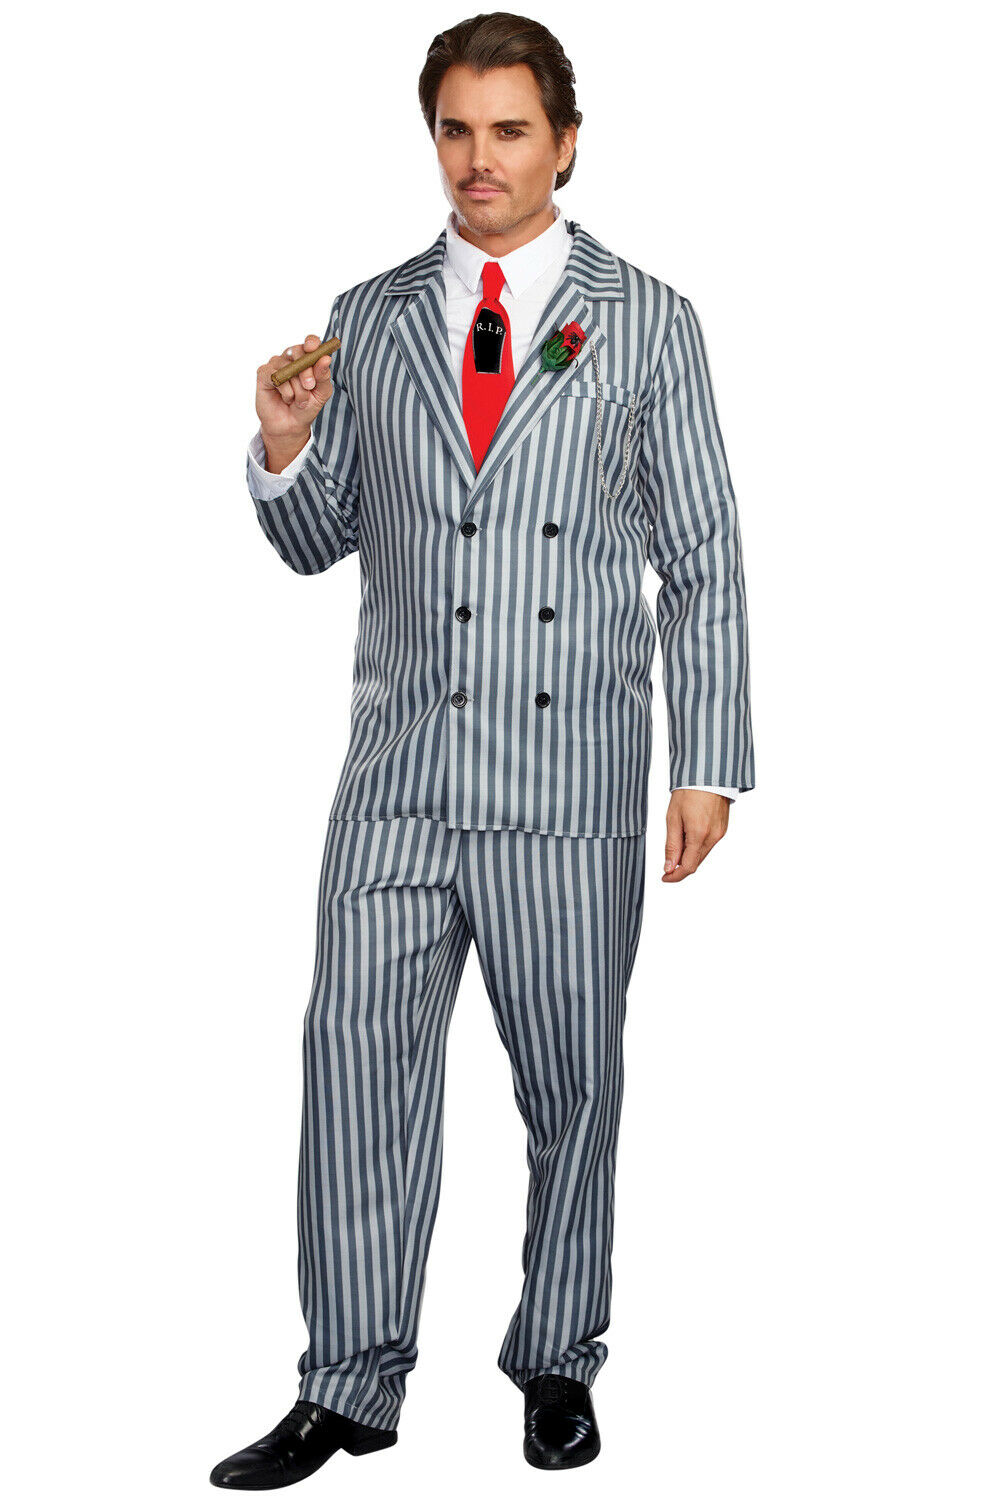 brand new addams family gomez pin stripe suit mr. fright adult